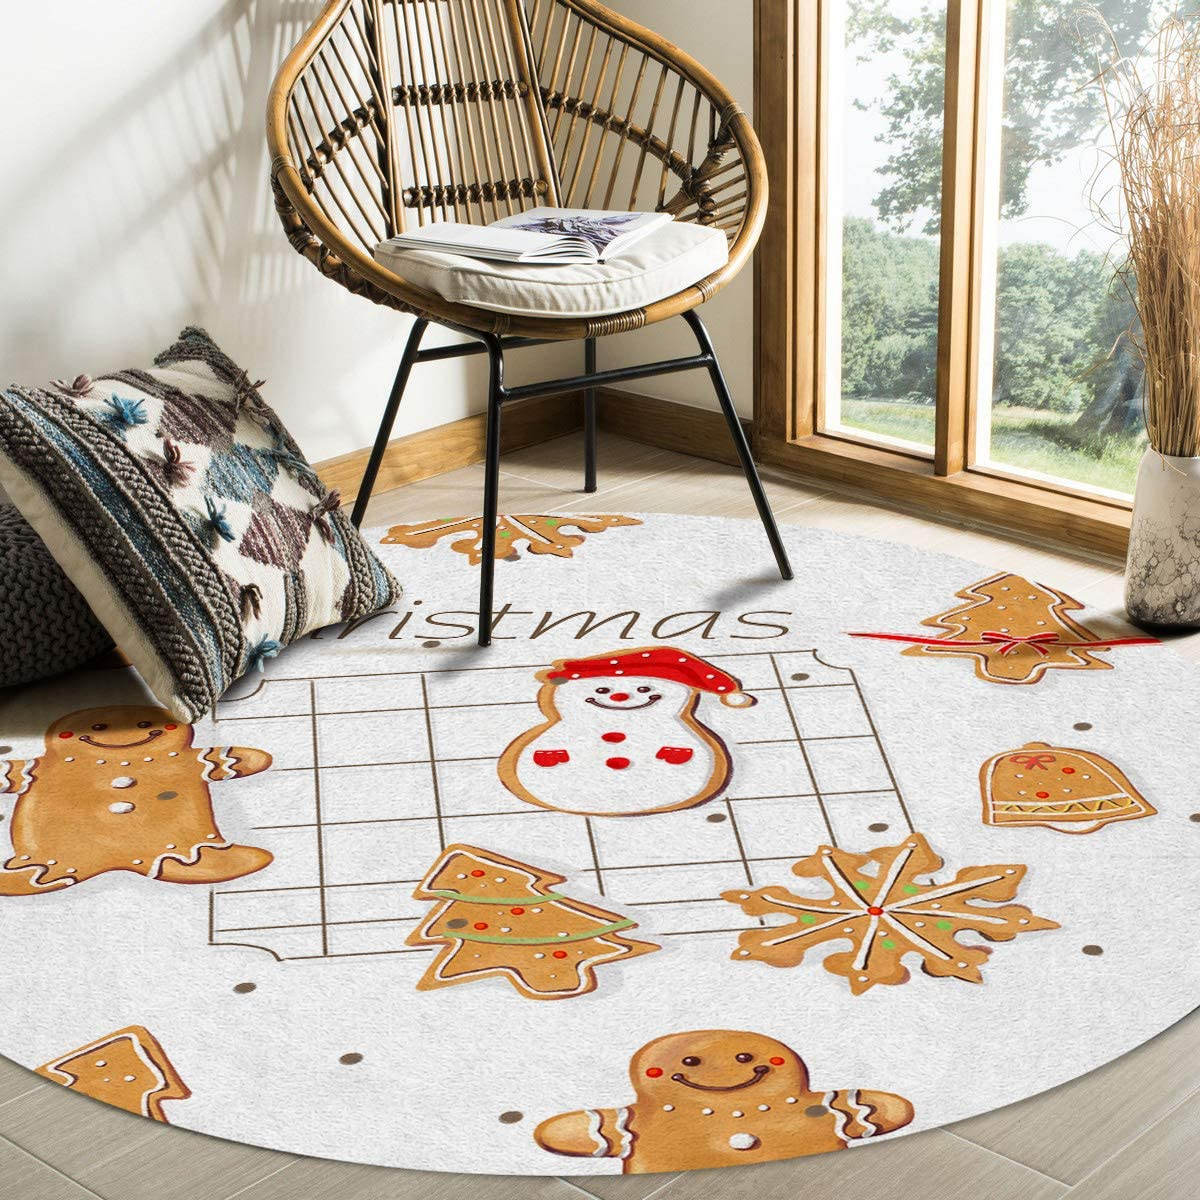 Modern Round Classic Area Rug 4 for Feet Low-Profi Bedroom Non-Shedding Max 43% OFF